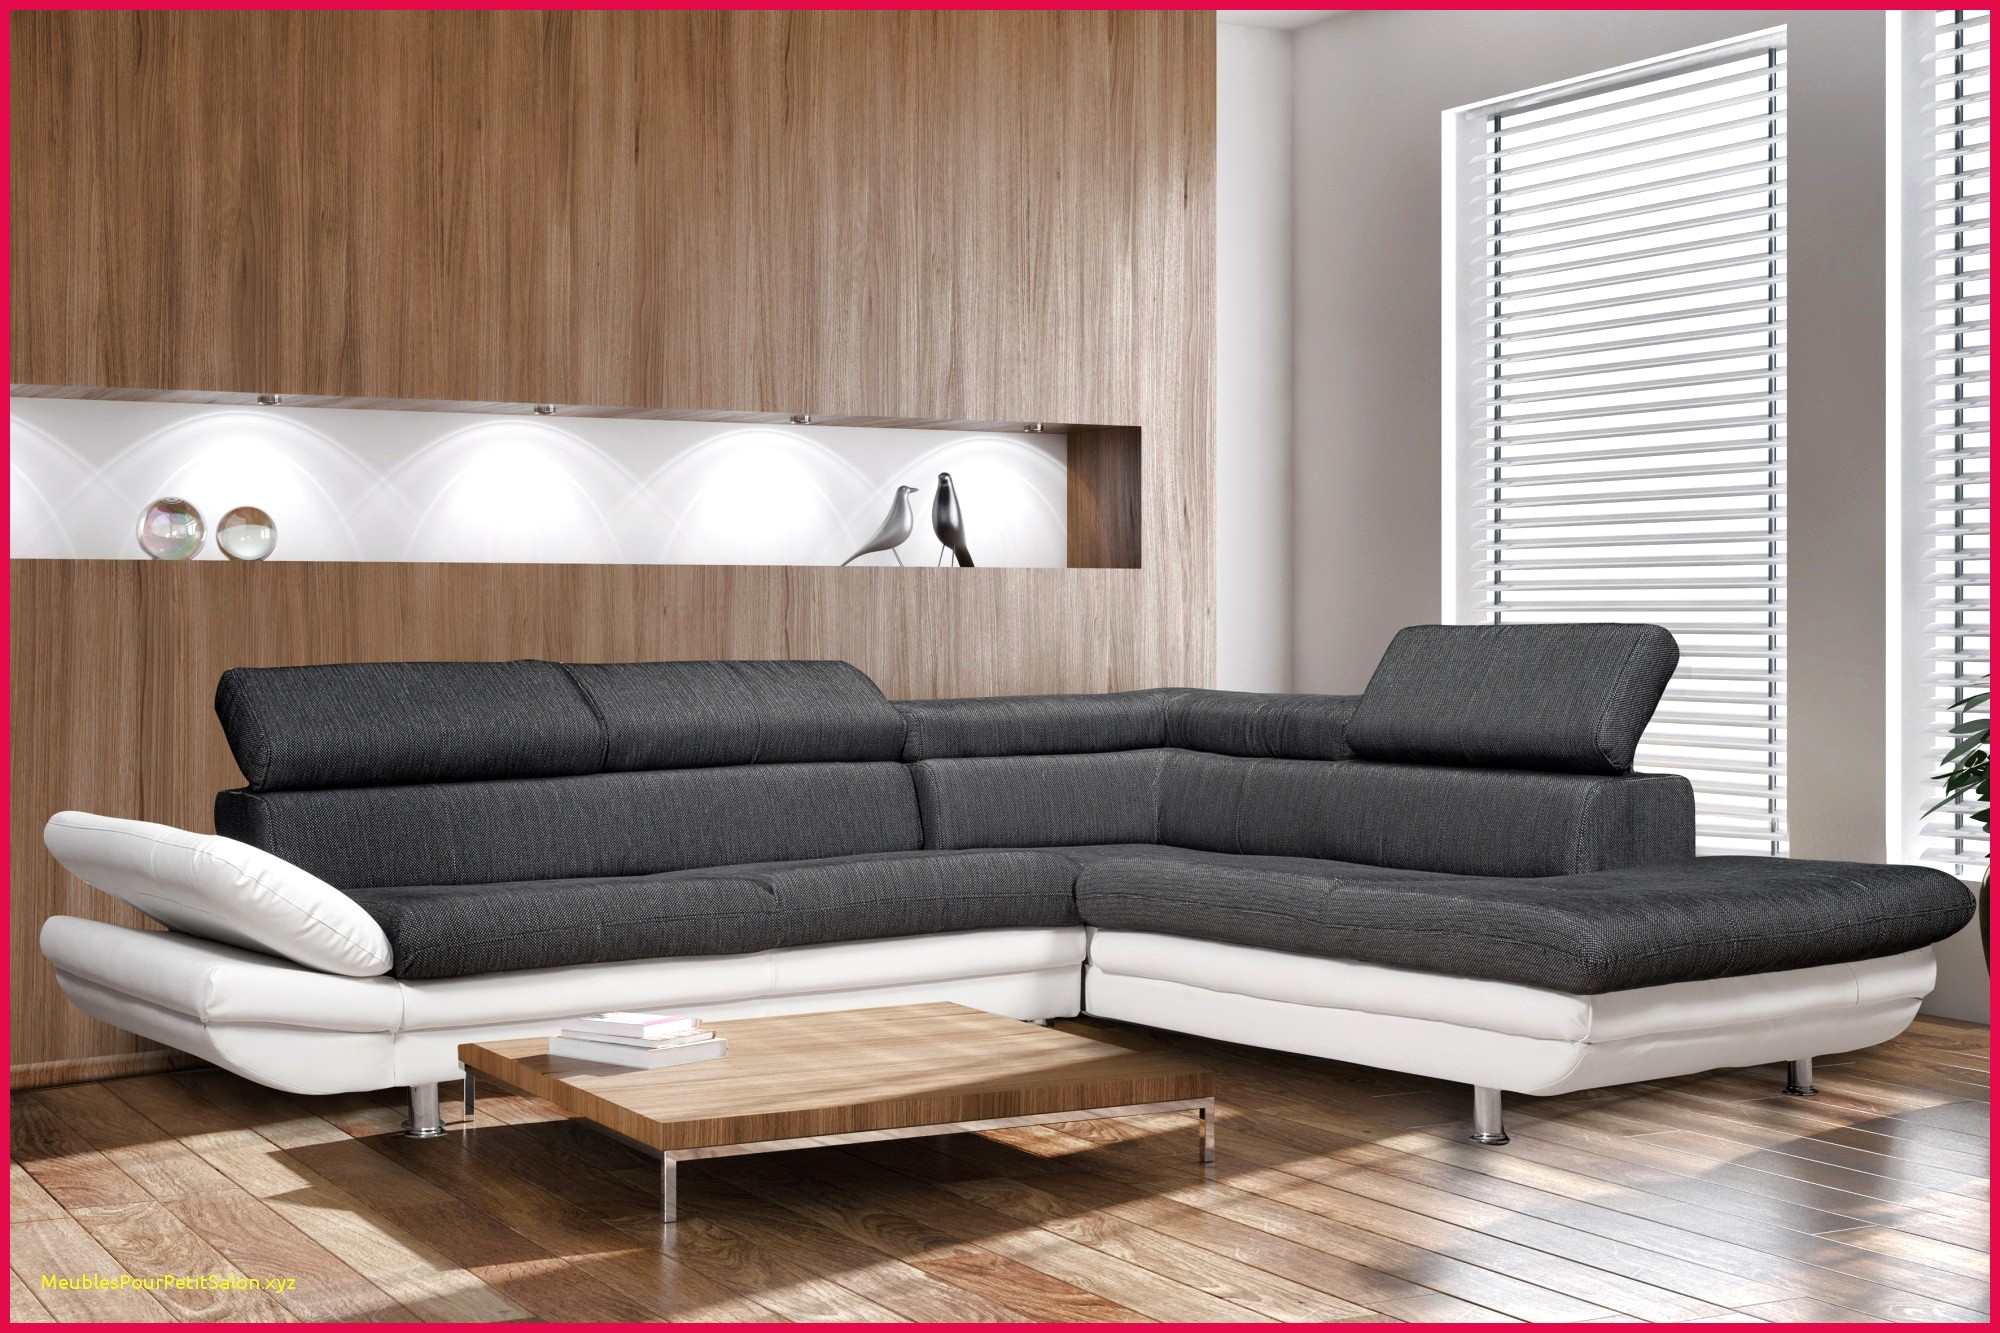 Canape Panoramique solde soldes Canape Angle Cuir